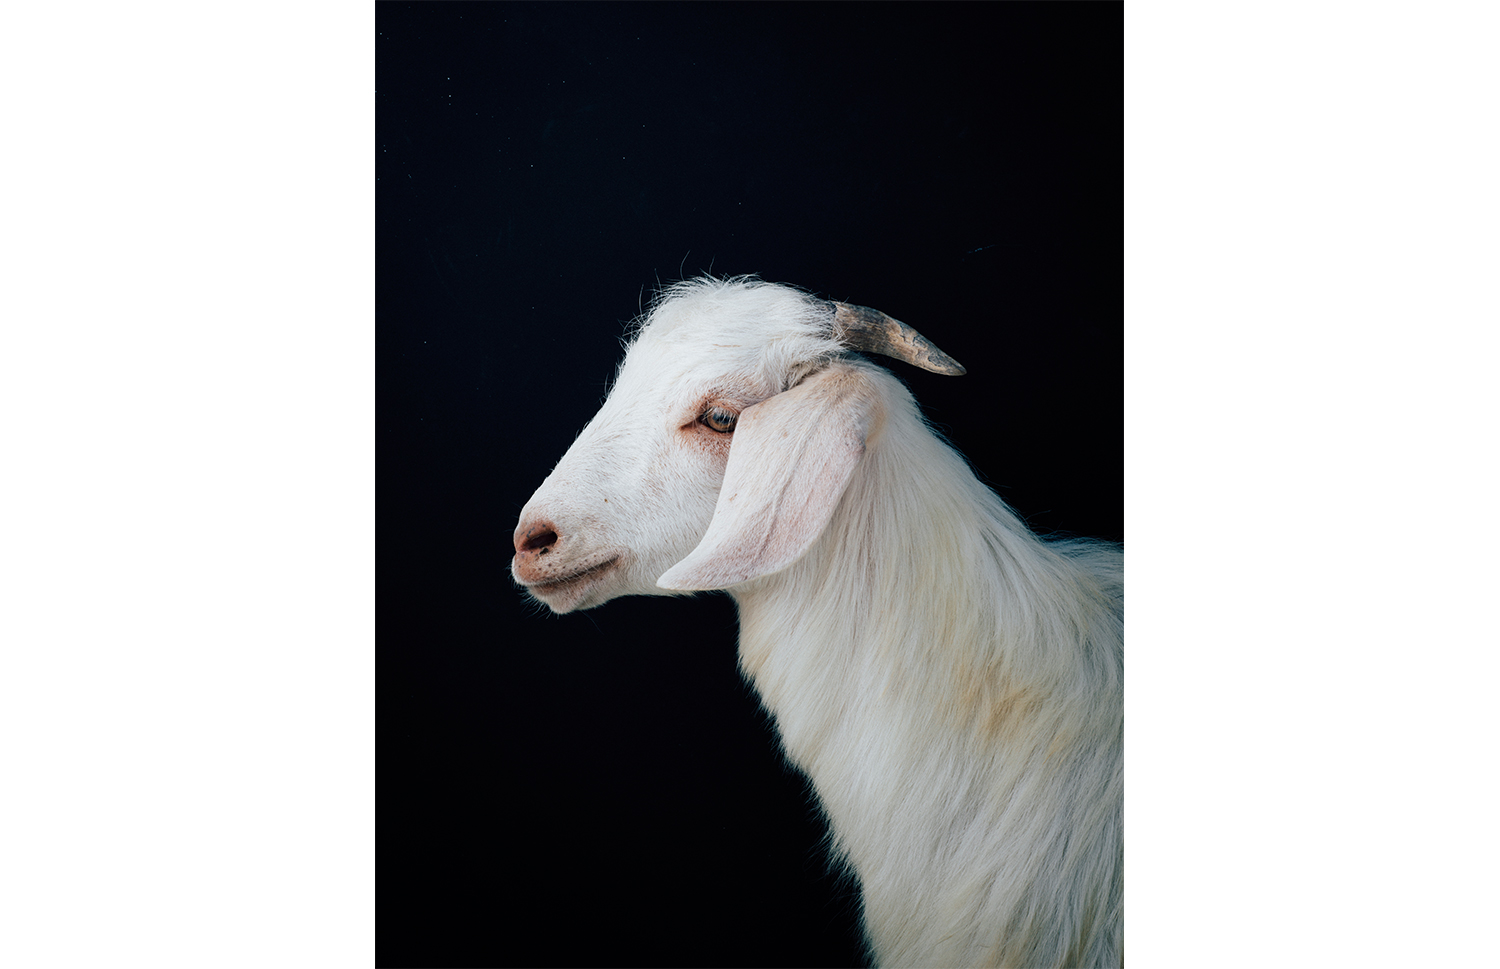 ijfkeridgley-oman-goat-portrait13.jpg